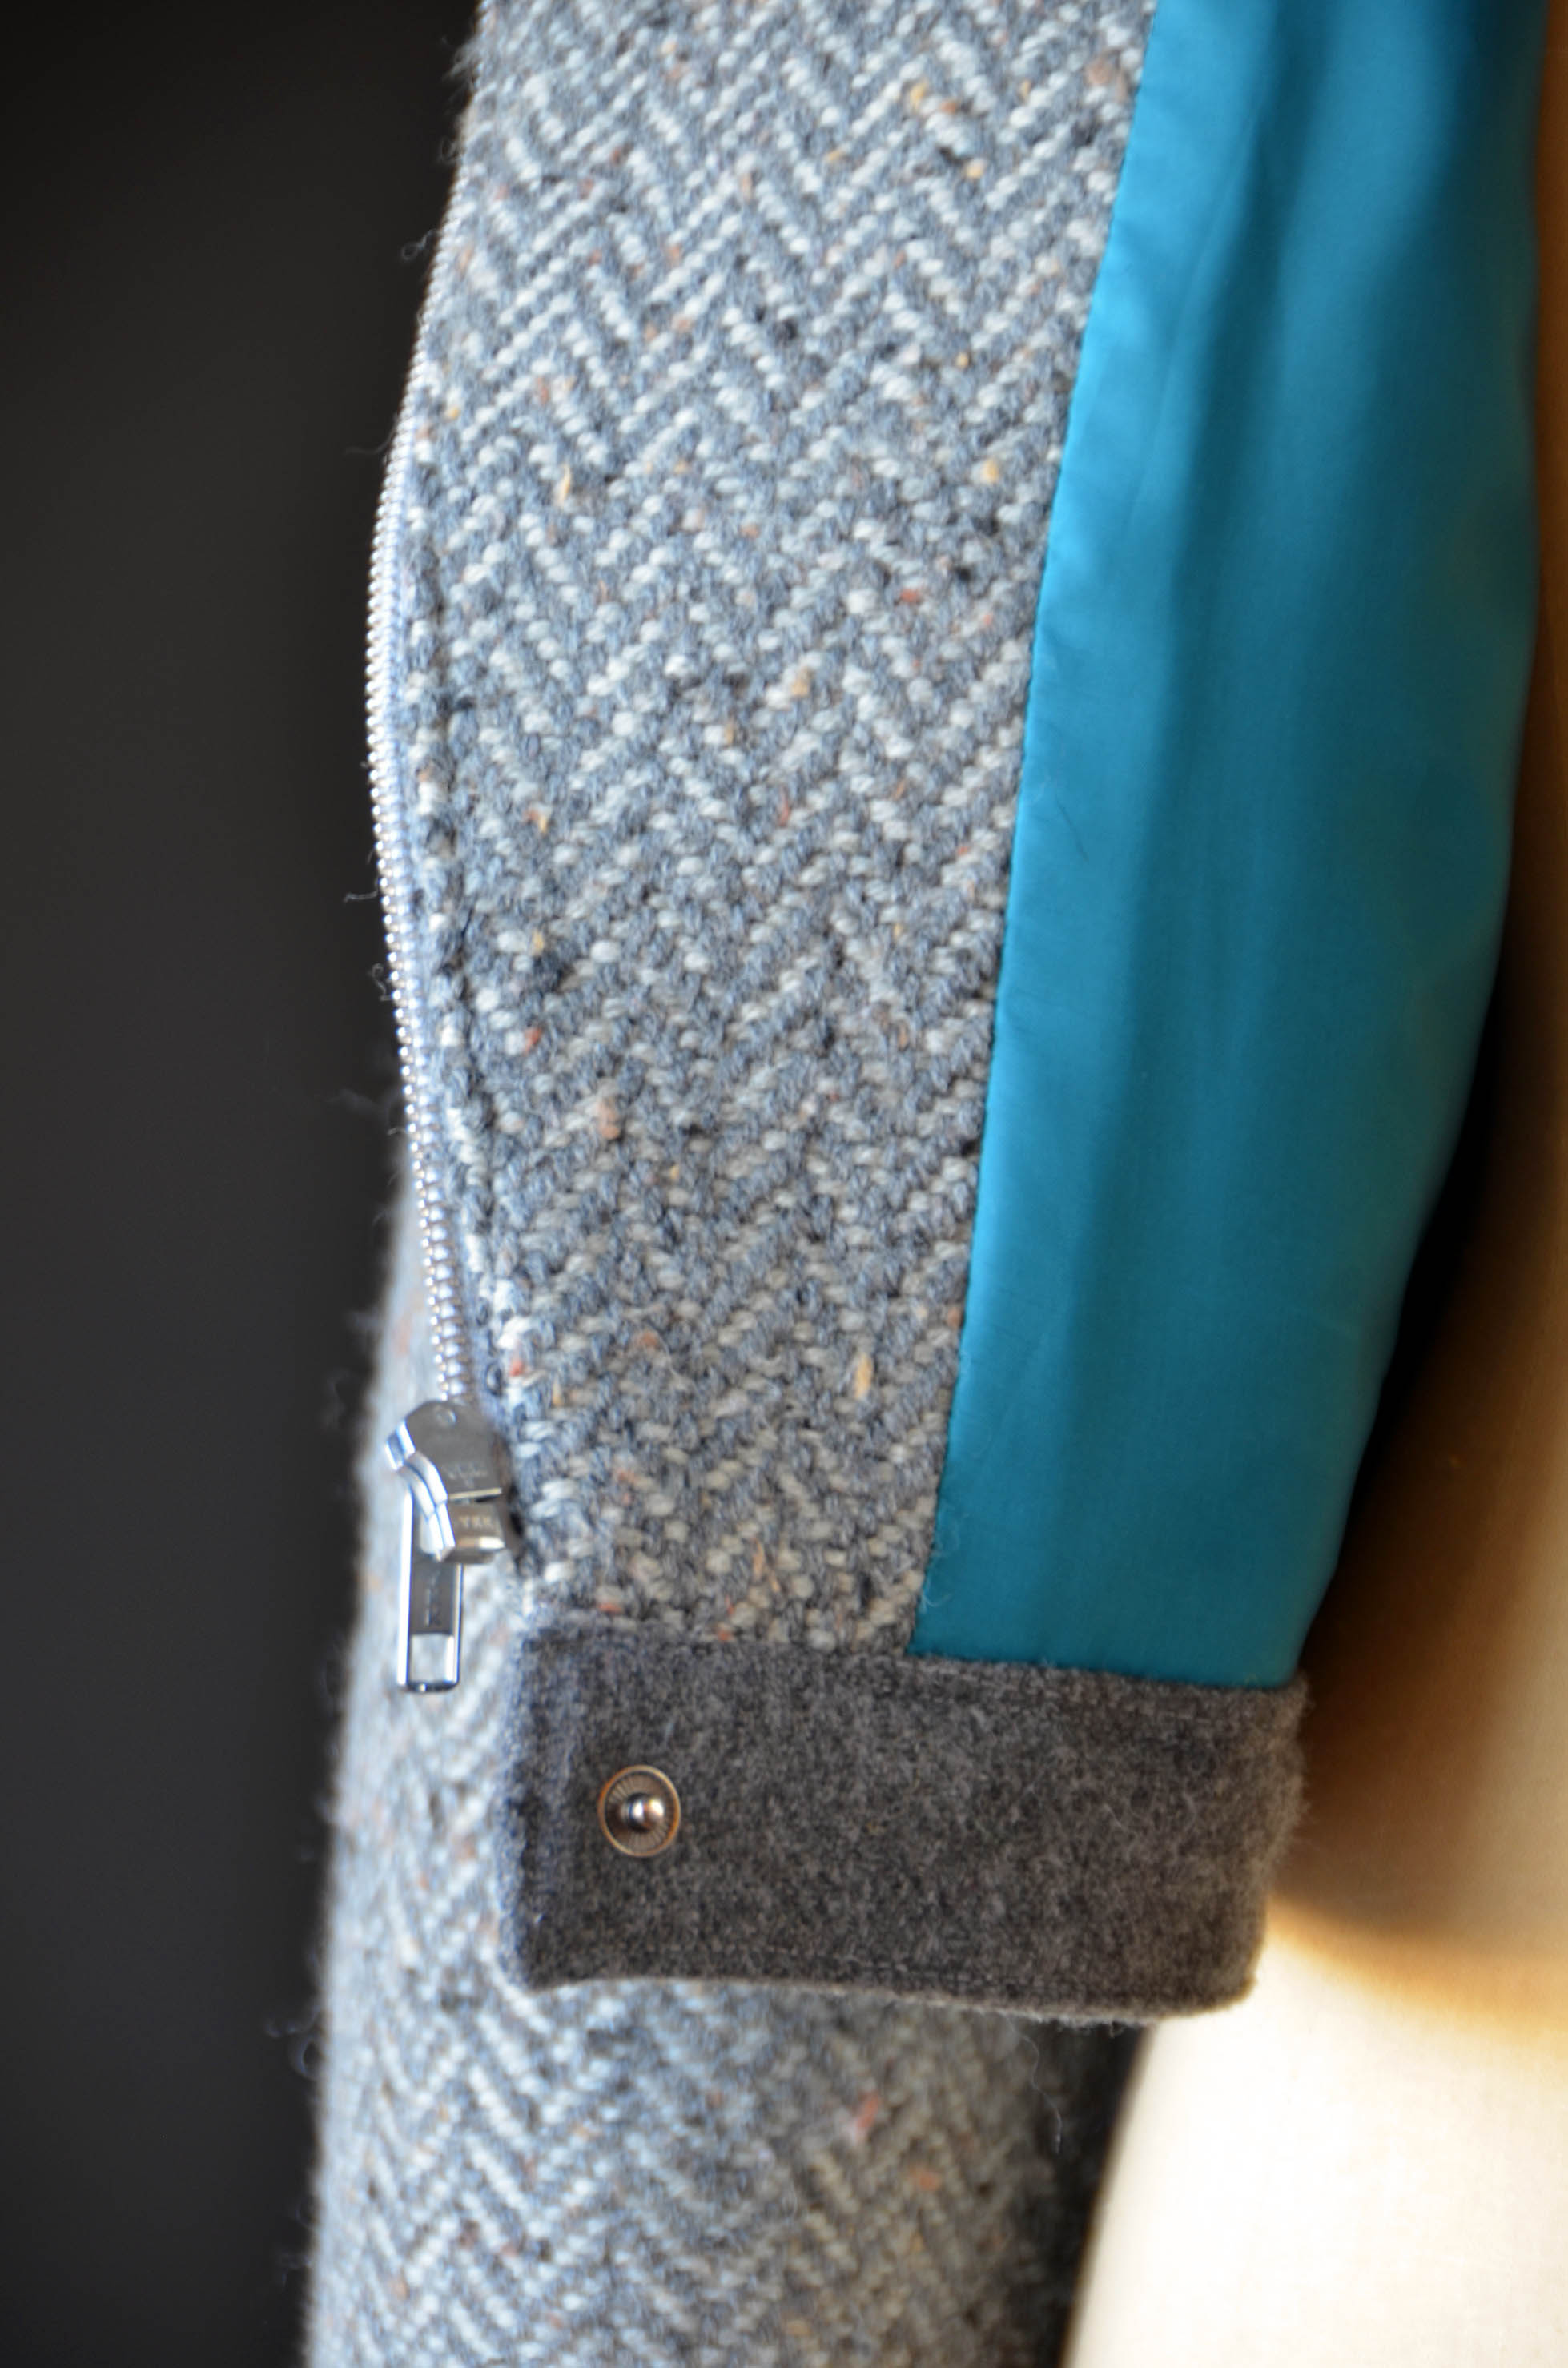 My pop of color is on the inside of my jacket in the form of teal lining. Mmmm.